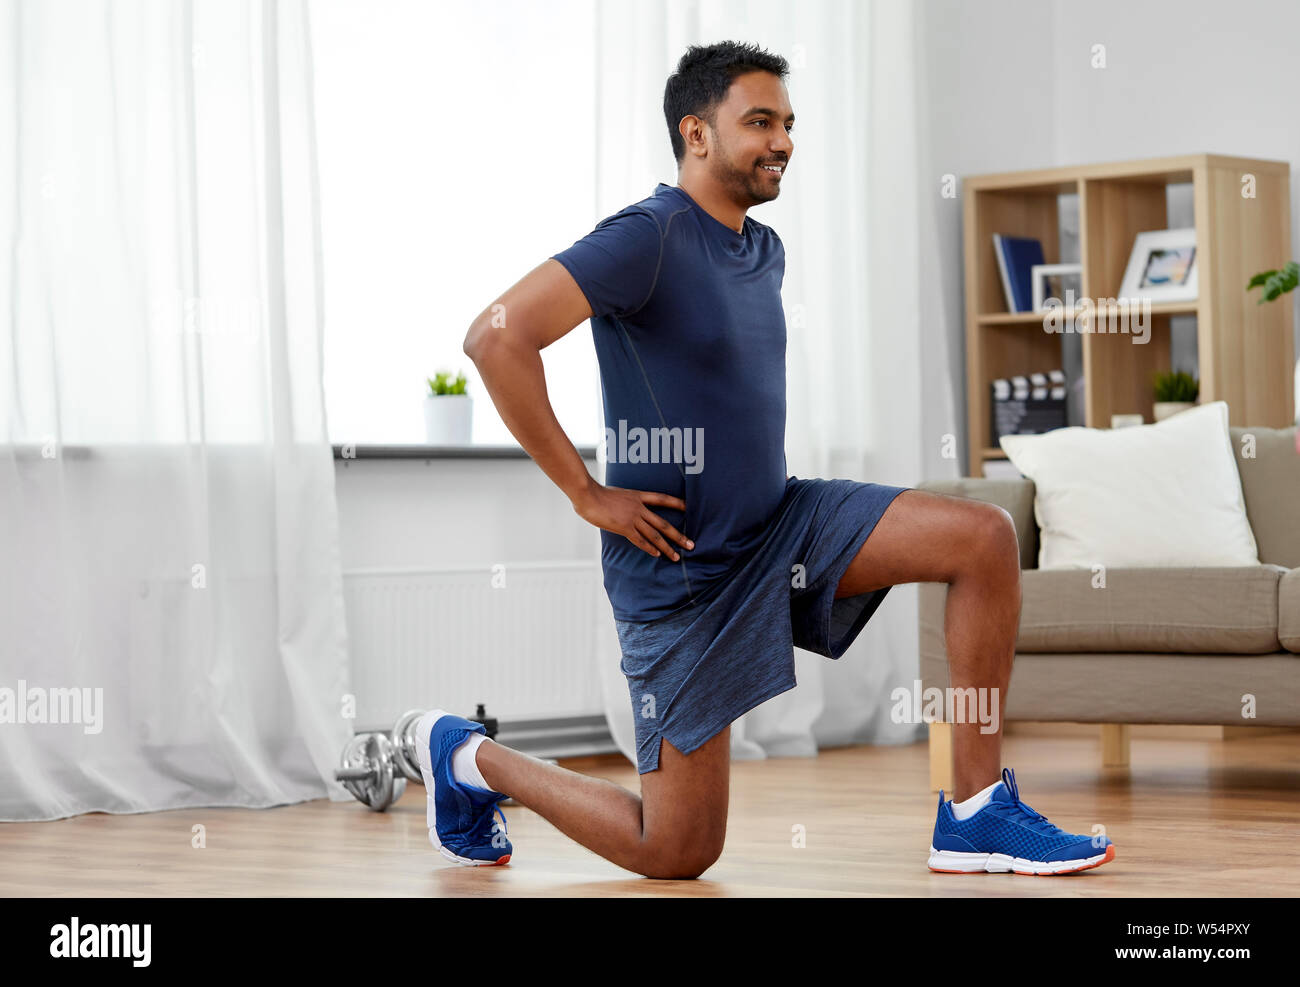 Squats Home Stock Photos & Squats Home Stock Images - Alamy